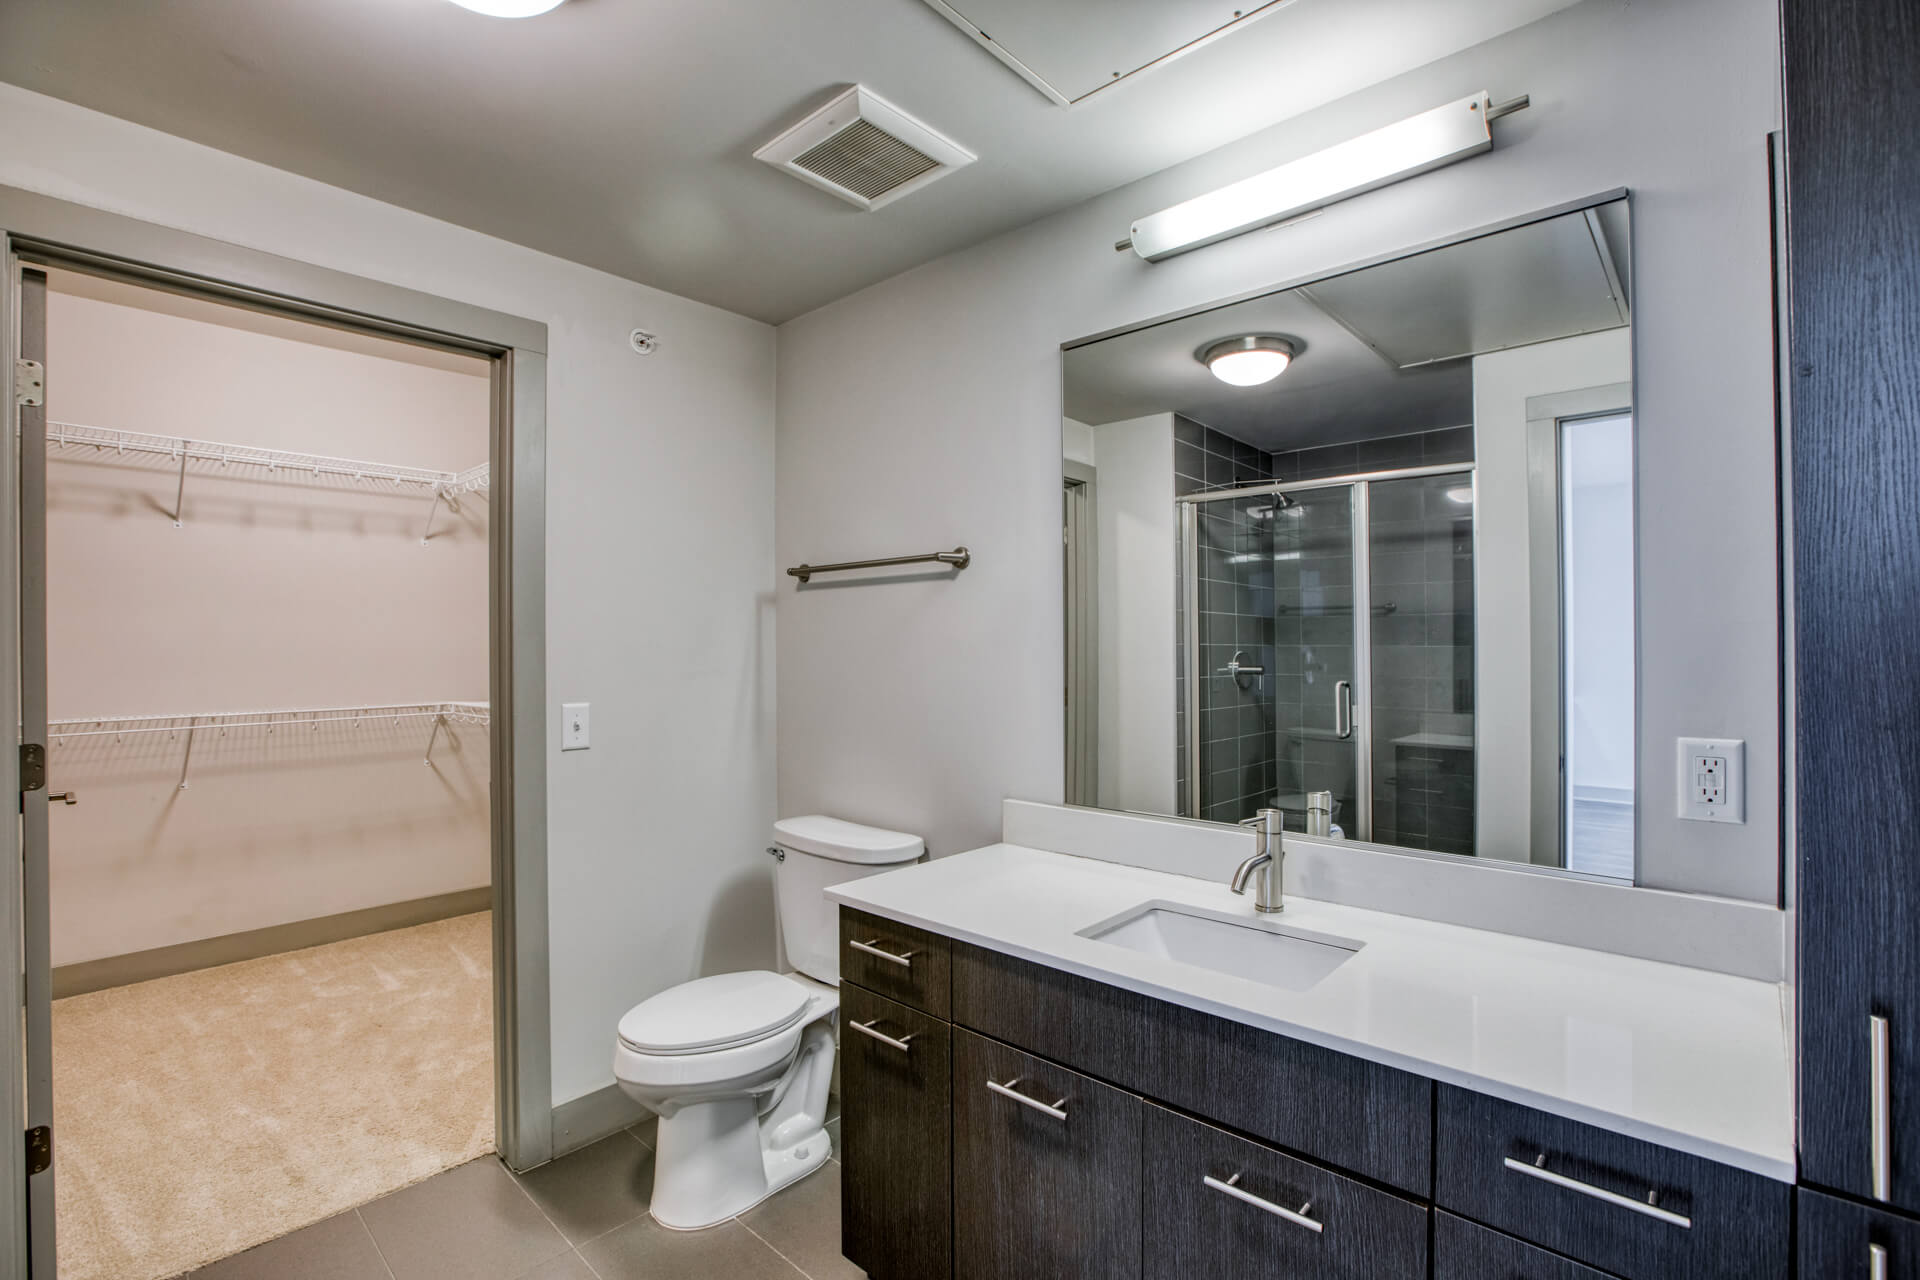 Bathroom With Extra Storage Space at Centric LoHi by Windsor, Colorado, 80211